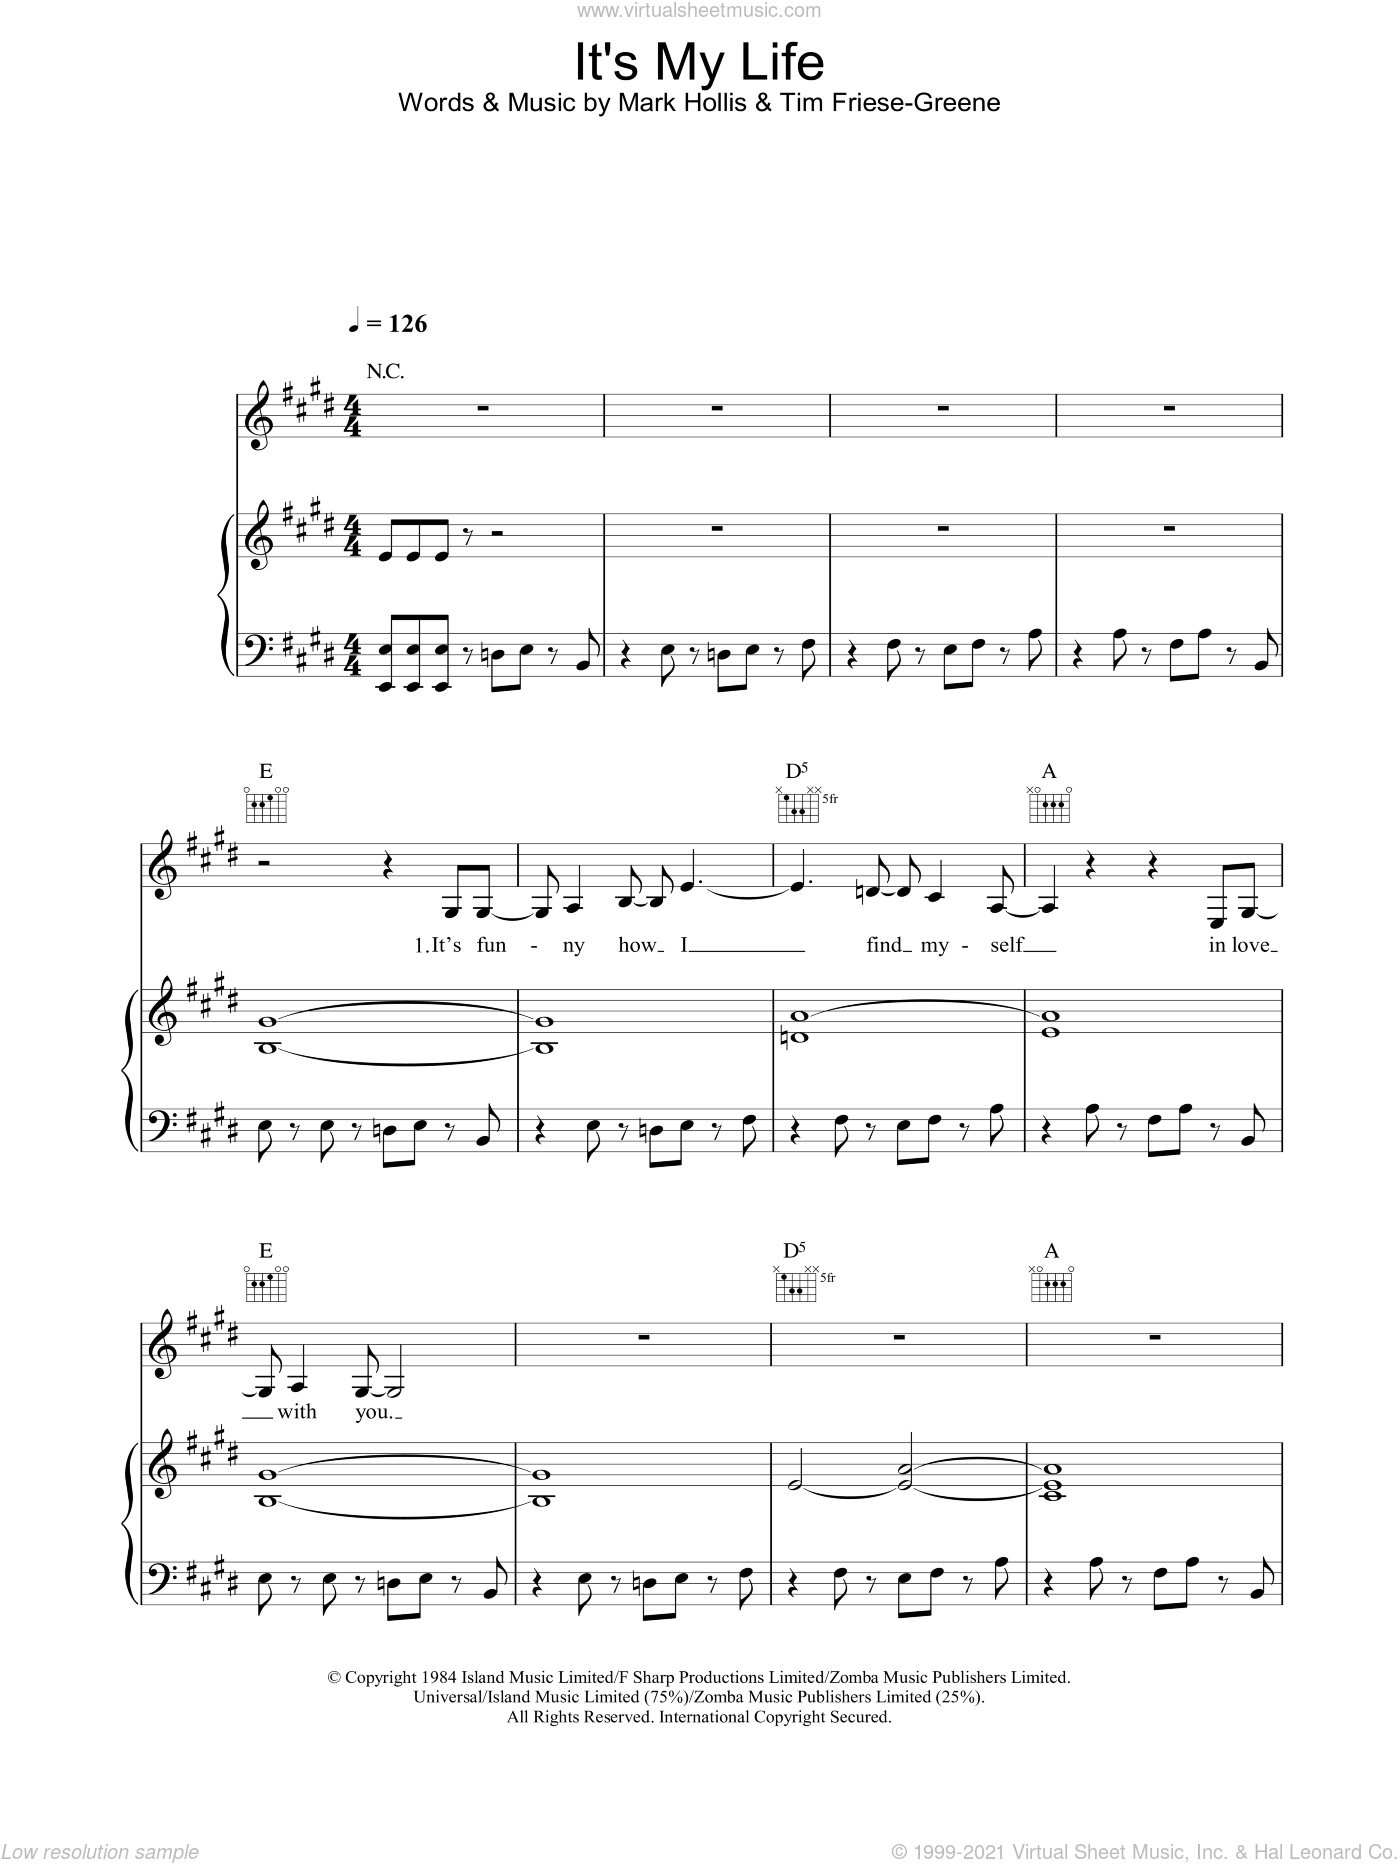 It's My Life sheet music for voice, piano or guitar by No Doubt